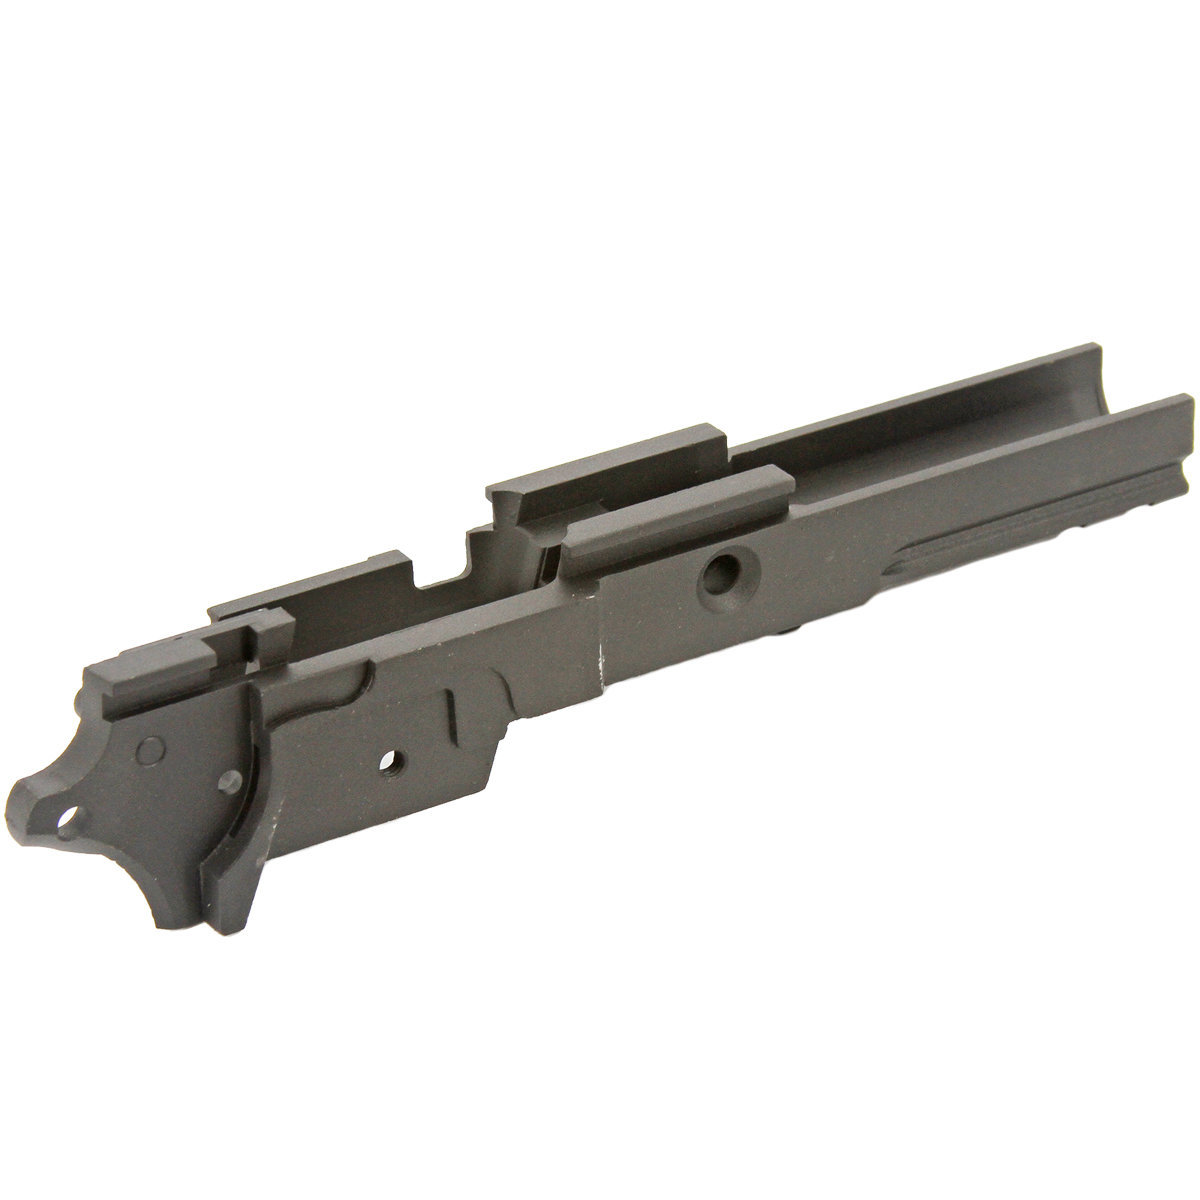 "View larger image of Pistol Parts - Valken VT HICAPA-Lower Receiver (5.1"" Ver.)"